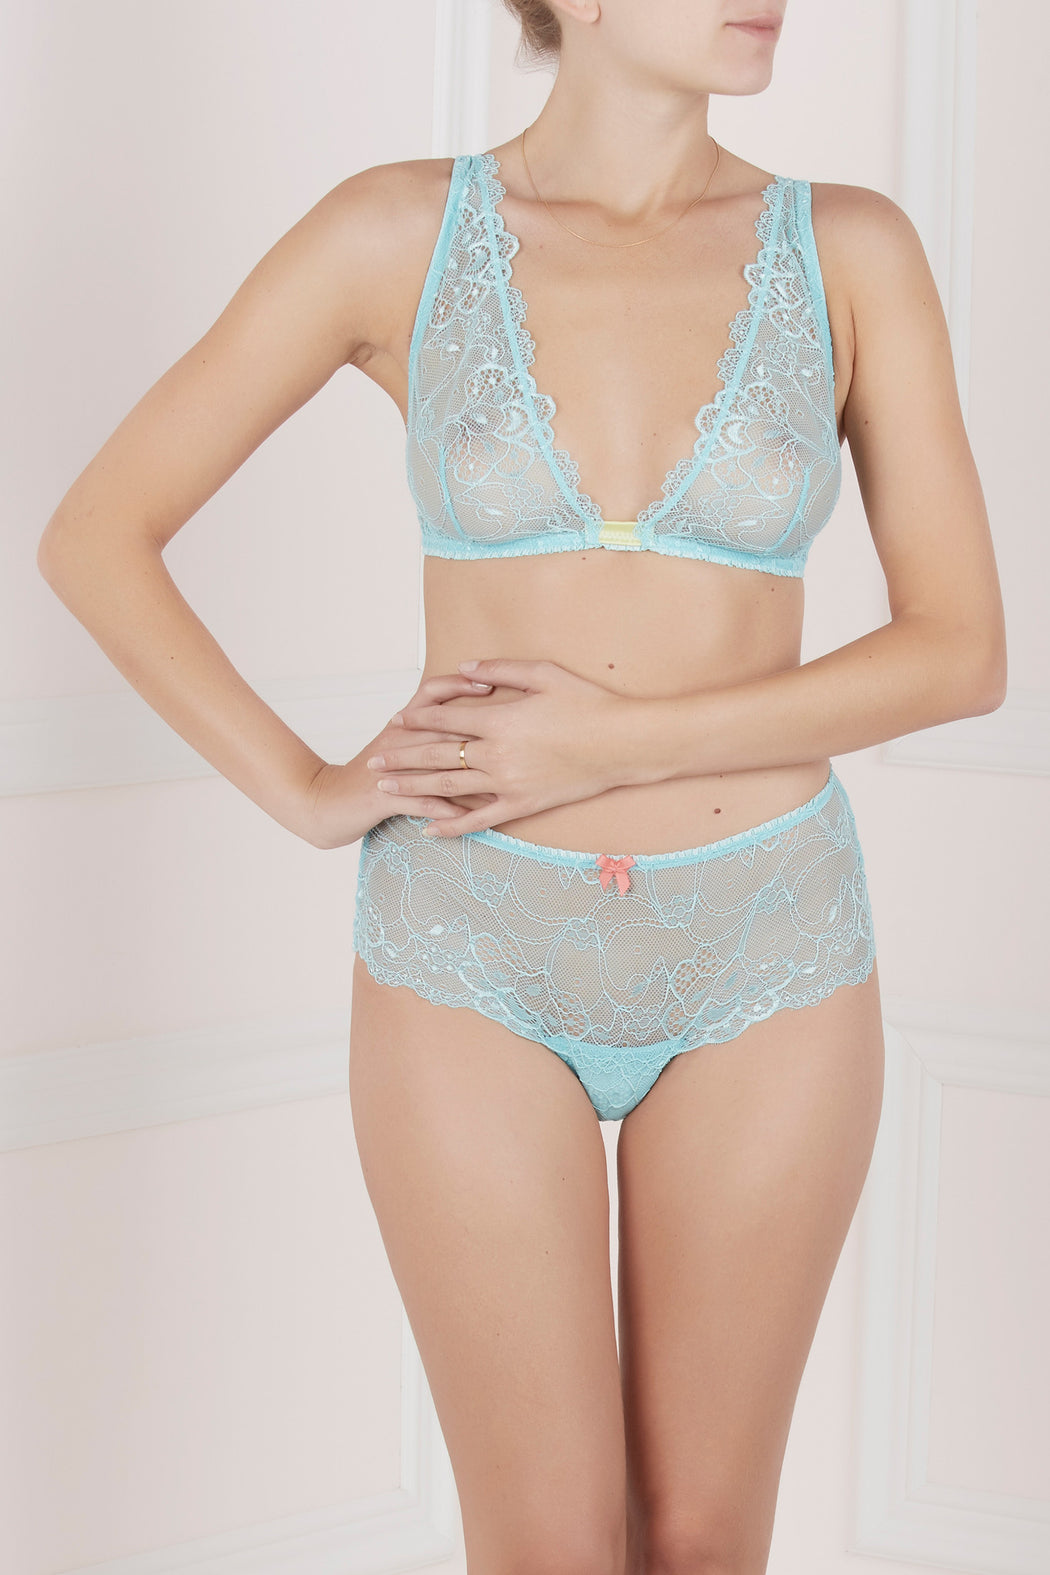 Summer Sorbet soft bra by Mimi Holliday